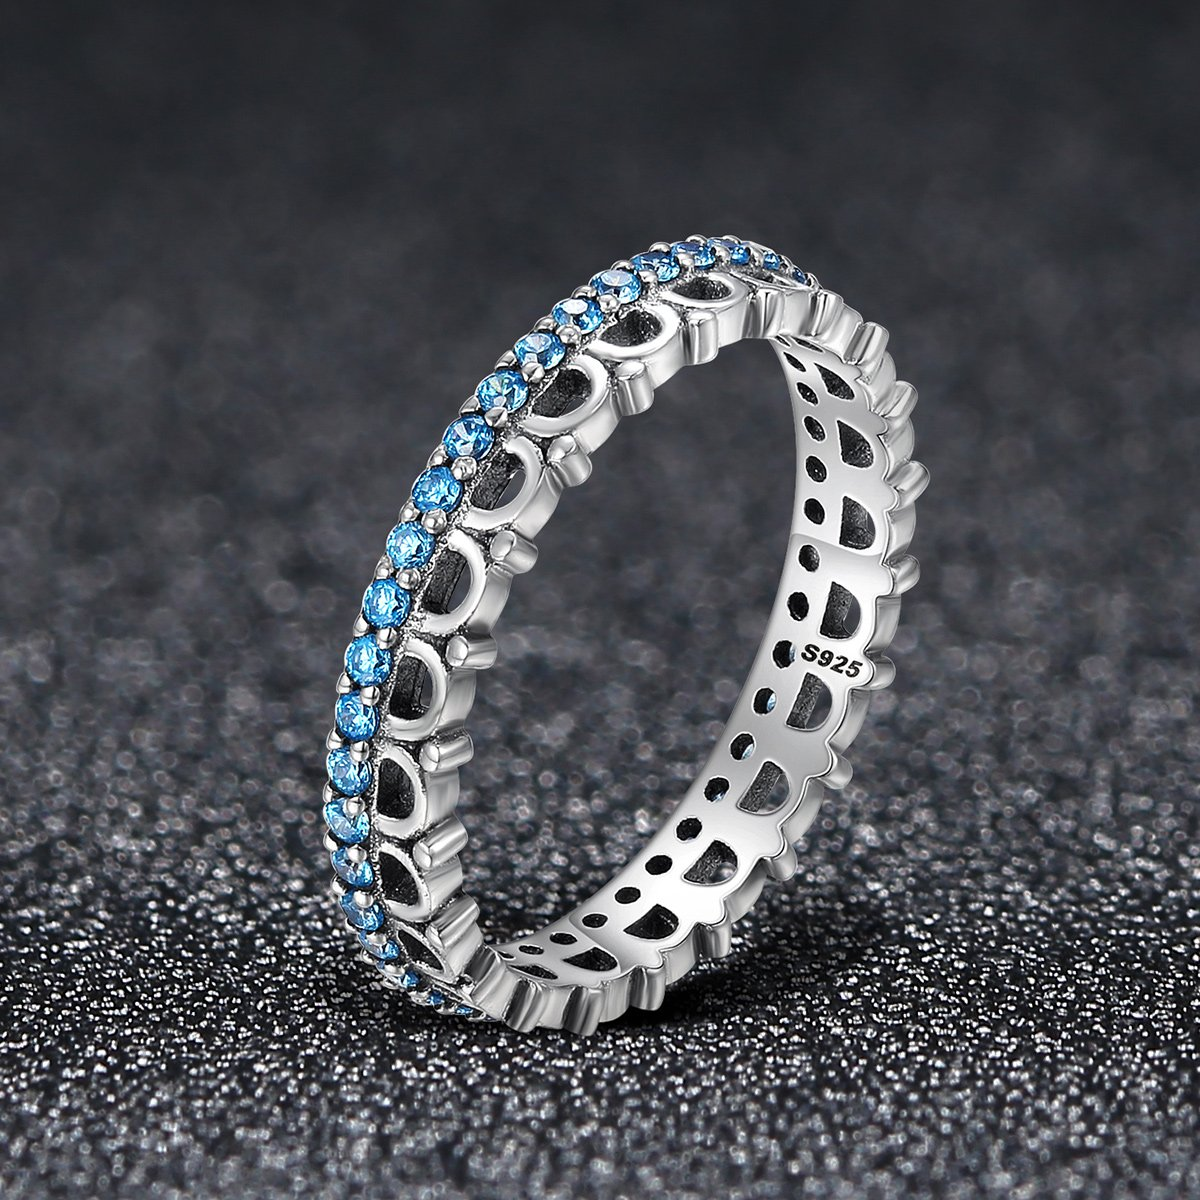 The Kiss Dancing Melody Sparking 925 Sterling Silver Ring Blue CZ